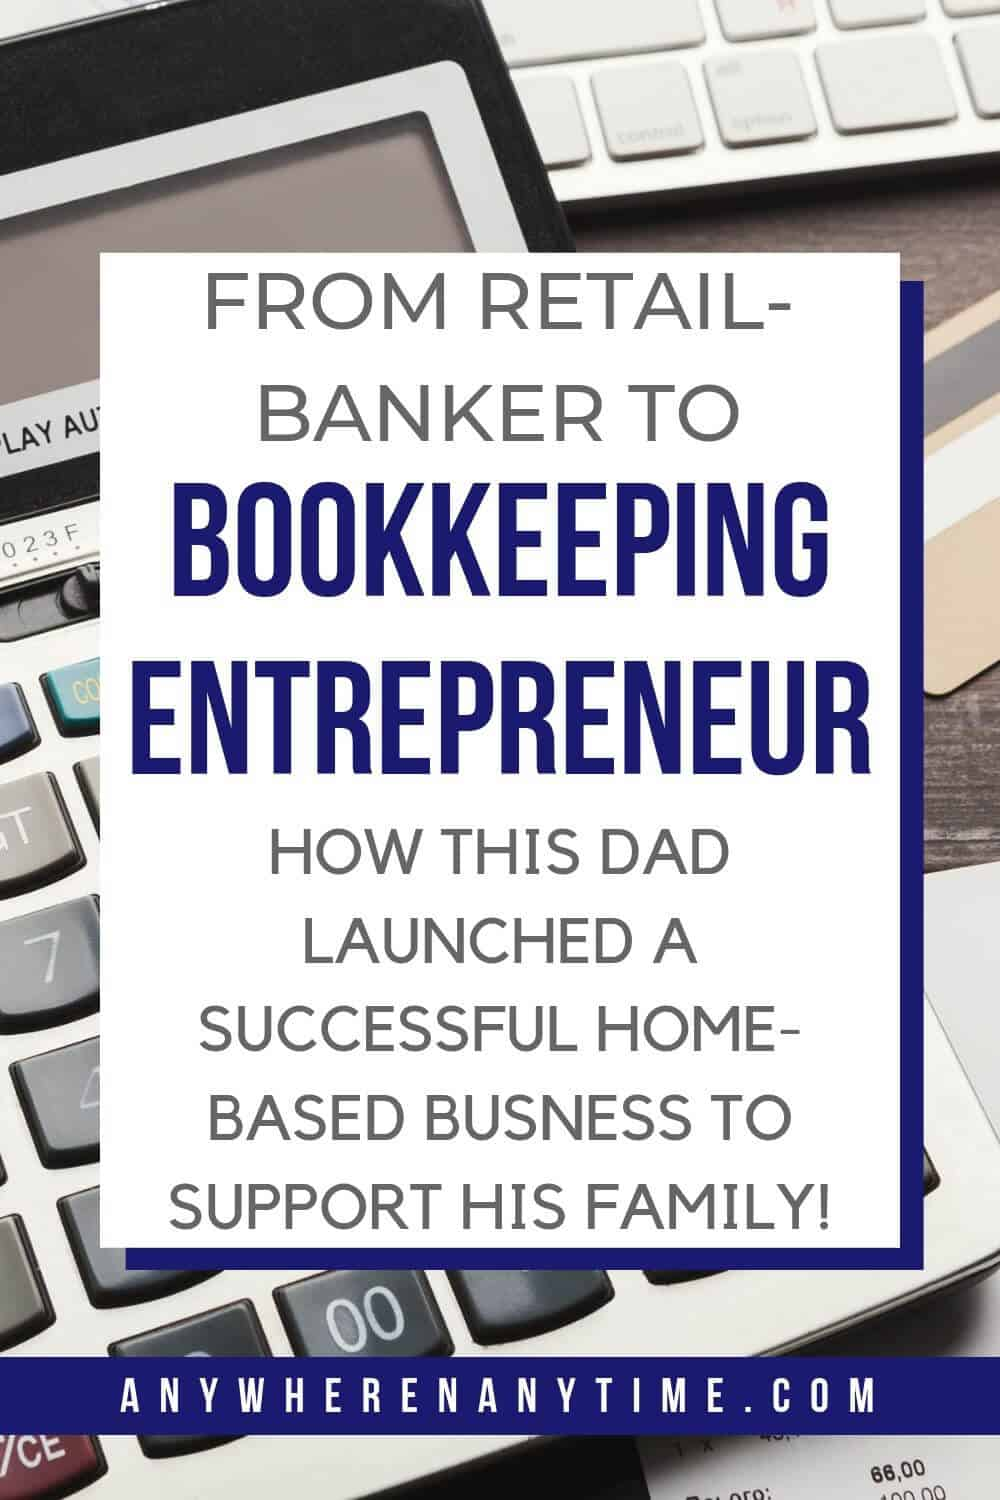 Wish you could be a stay-at-home dad to spend more time with your kids but still need to support your family? Find out how this Dad launched a successful home business as a bookkeeper!